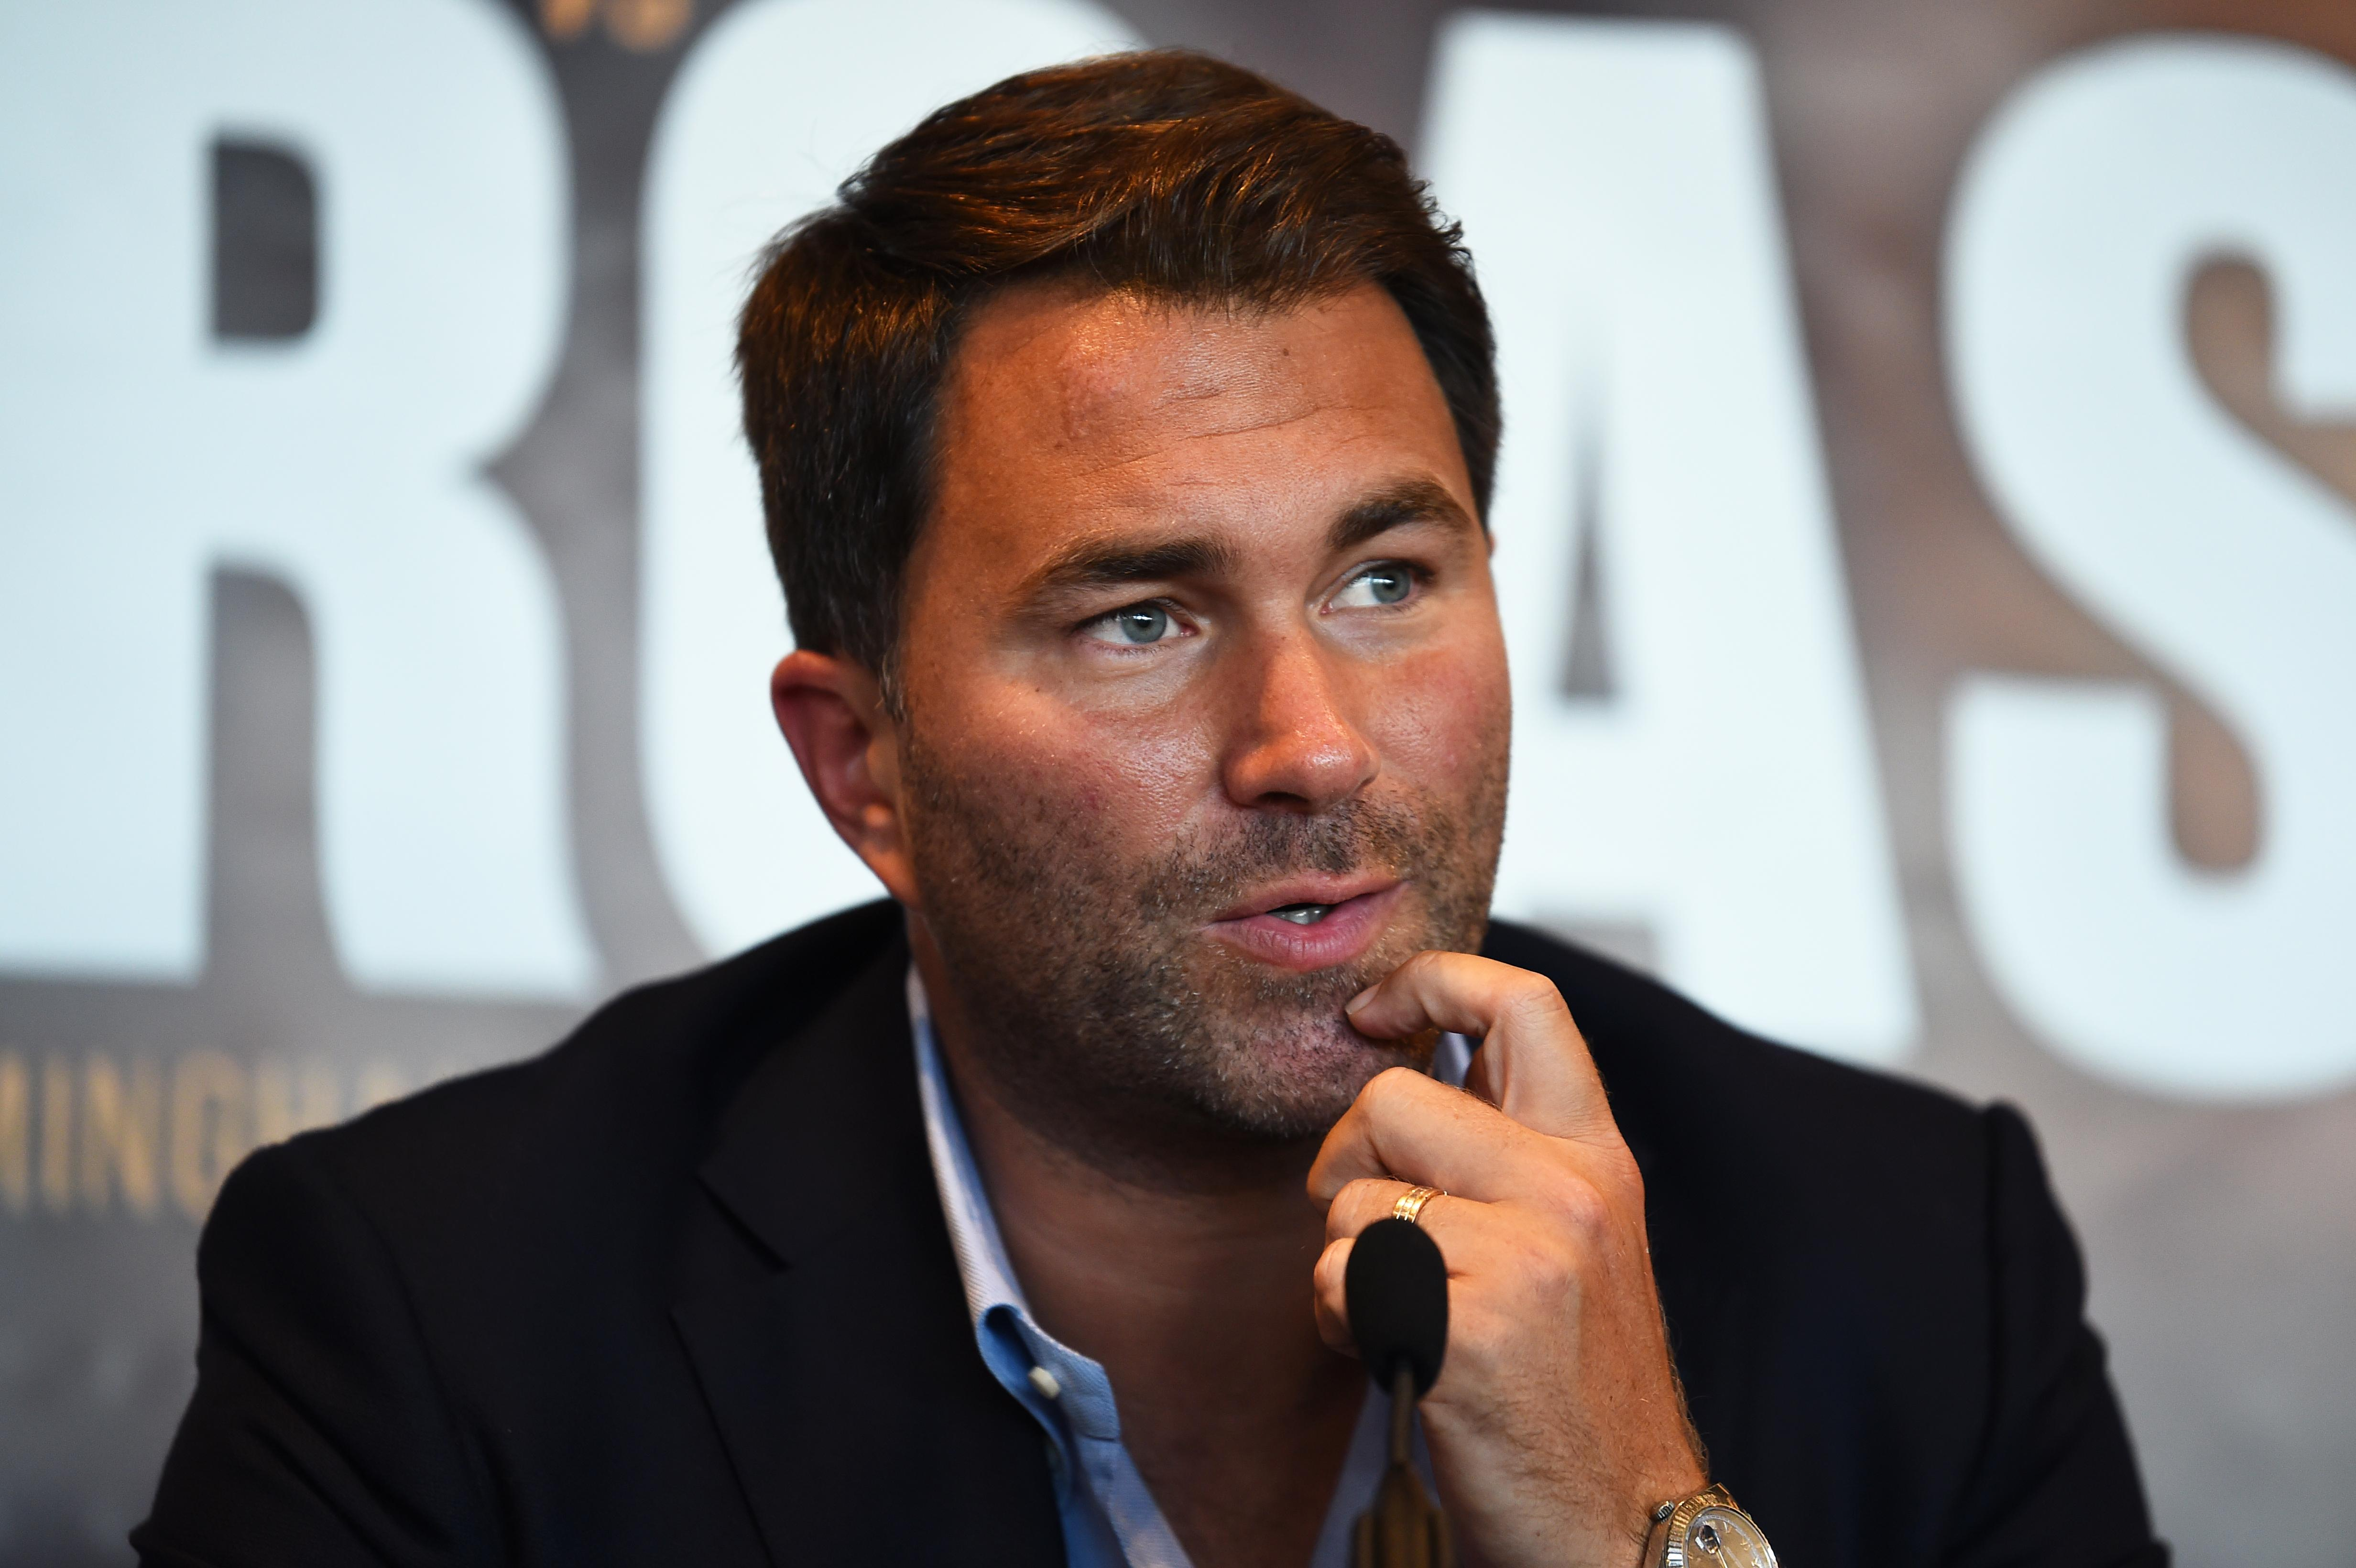 Eddie Hearn recently suggest the bout between Fury and Wilder would not take place